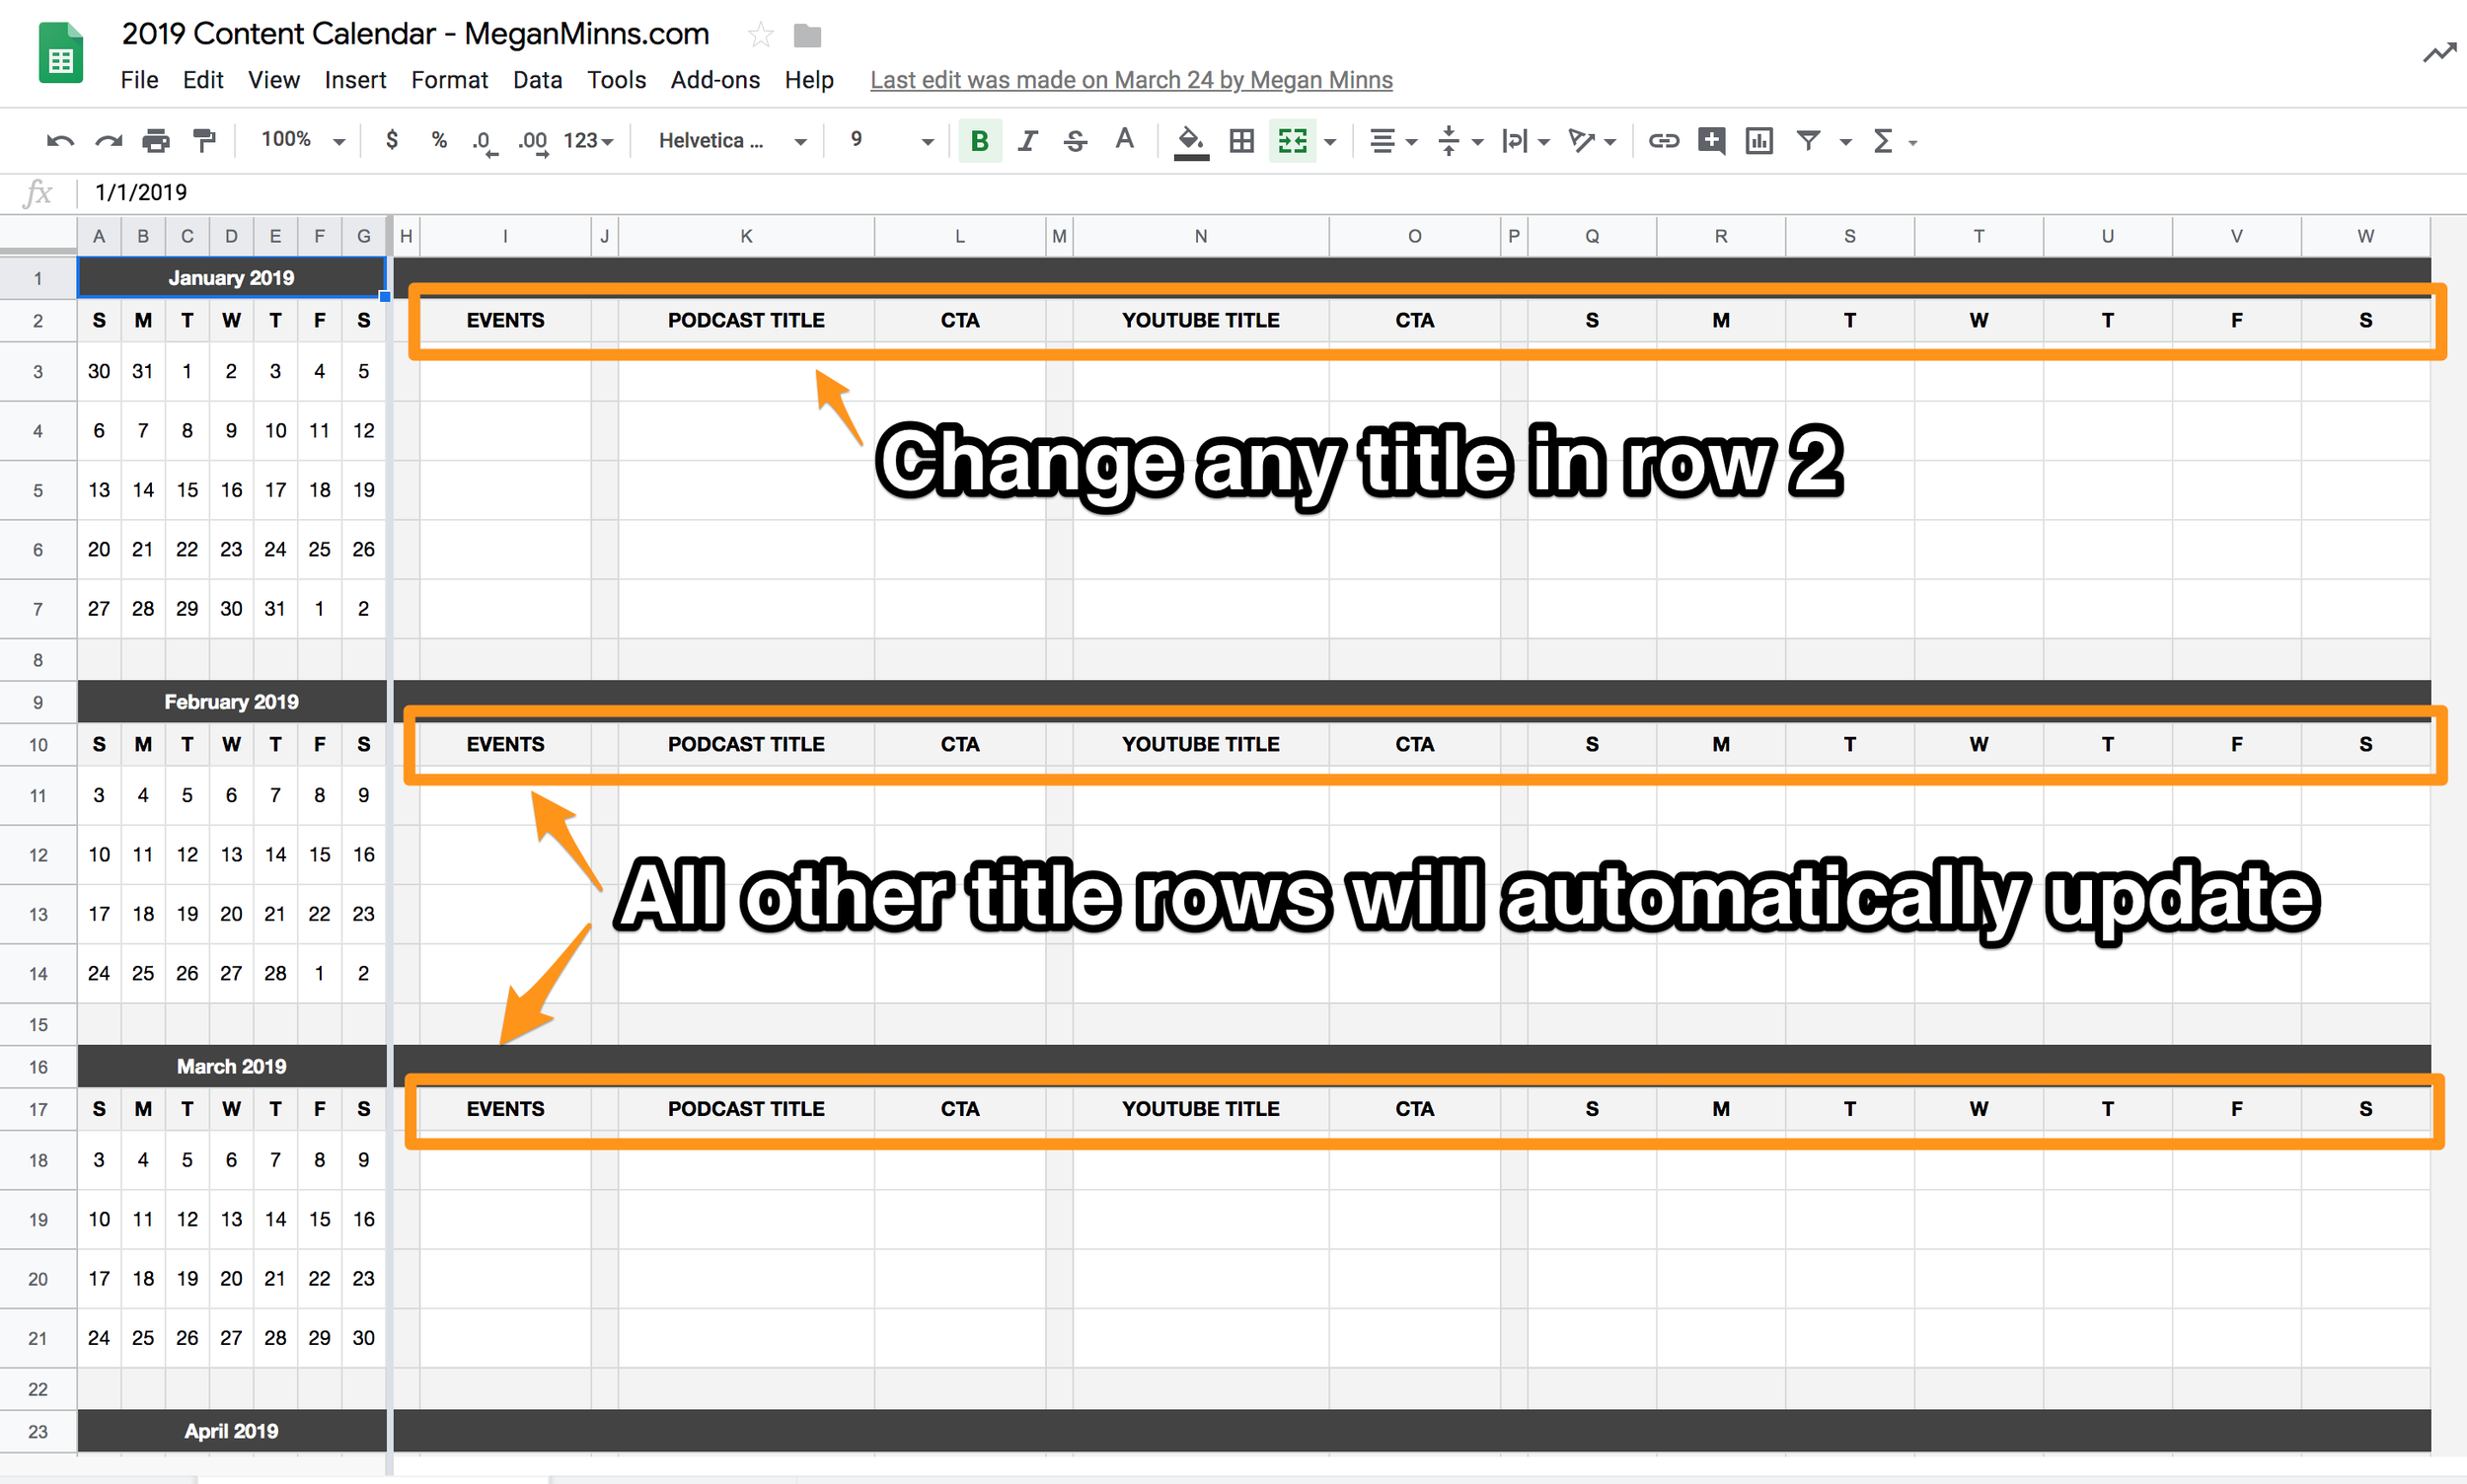 Content Calendar Template with automatically updating titles - Megan Minns